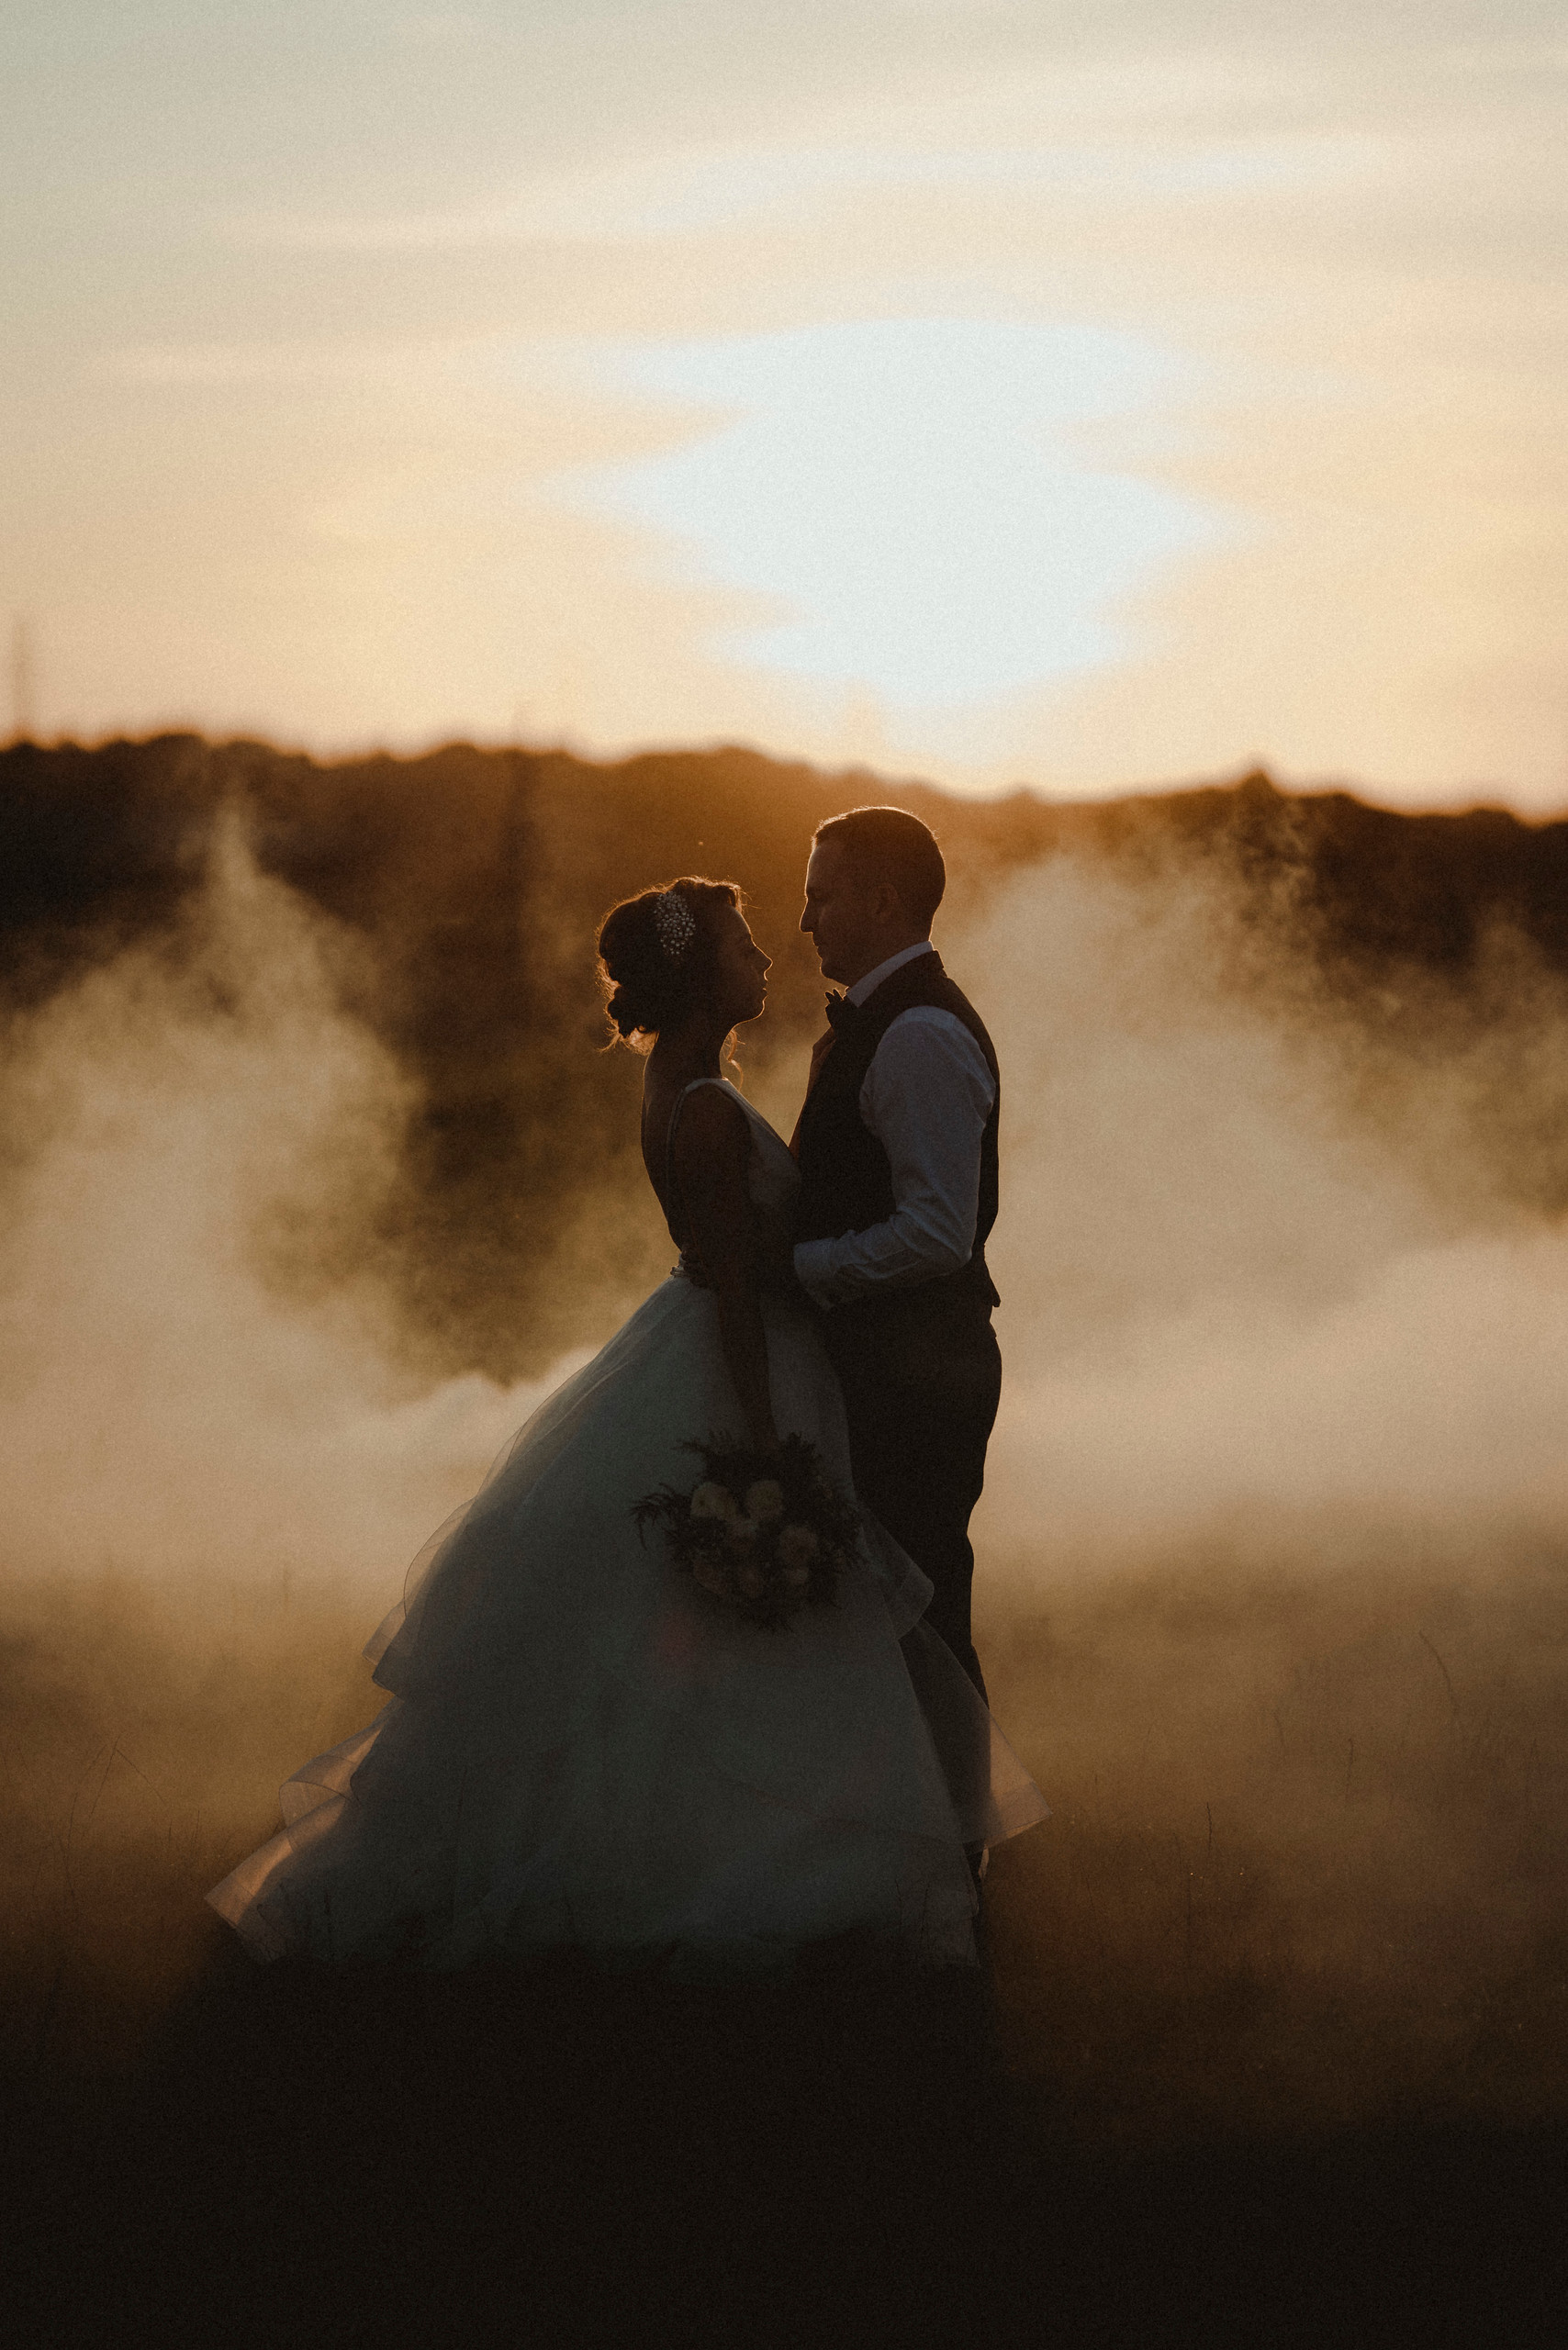 Bride and groom look at each other as the sun is setting and smoke is surrounding them